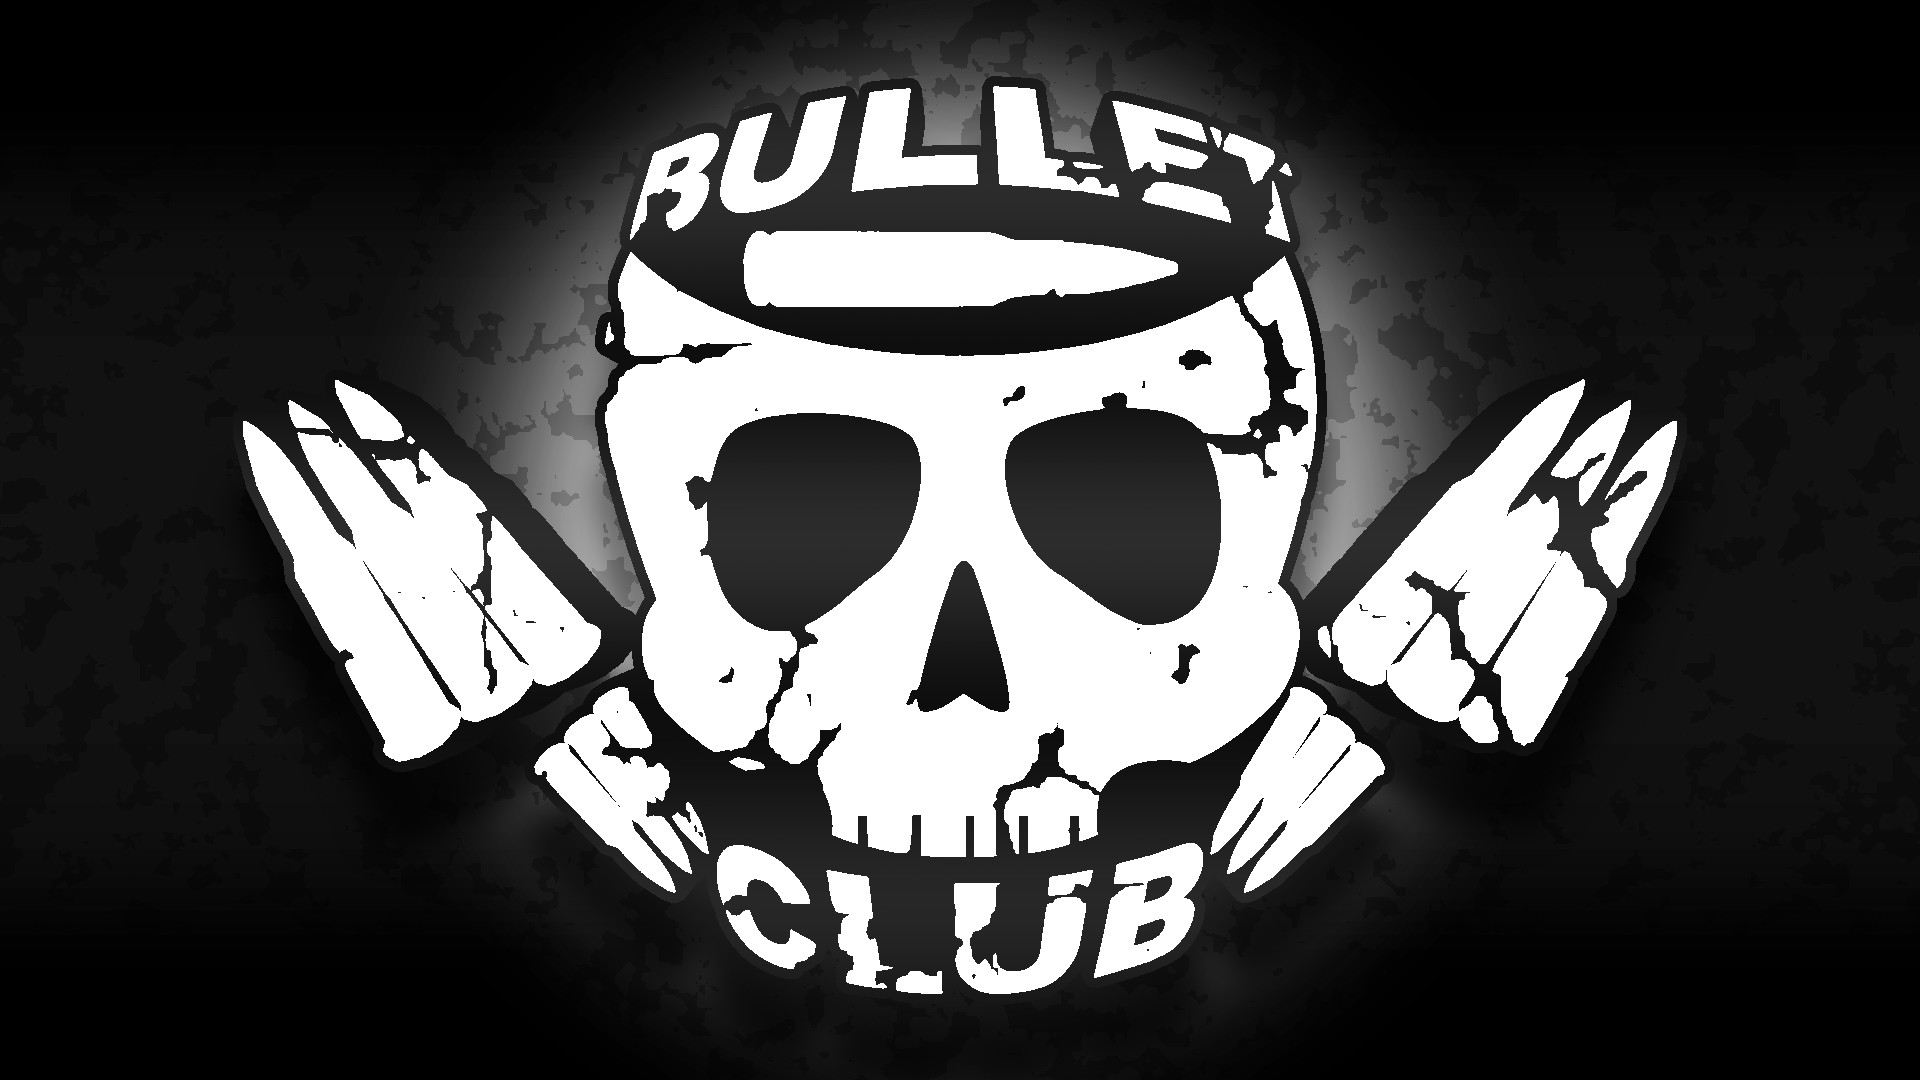 Another Bullet Club Founding Member Re-Signs with New Japan Pro Wrestling